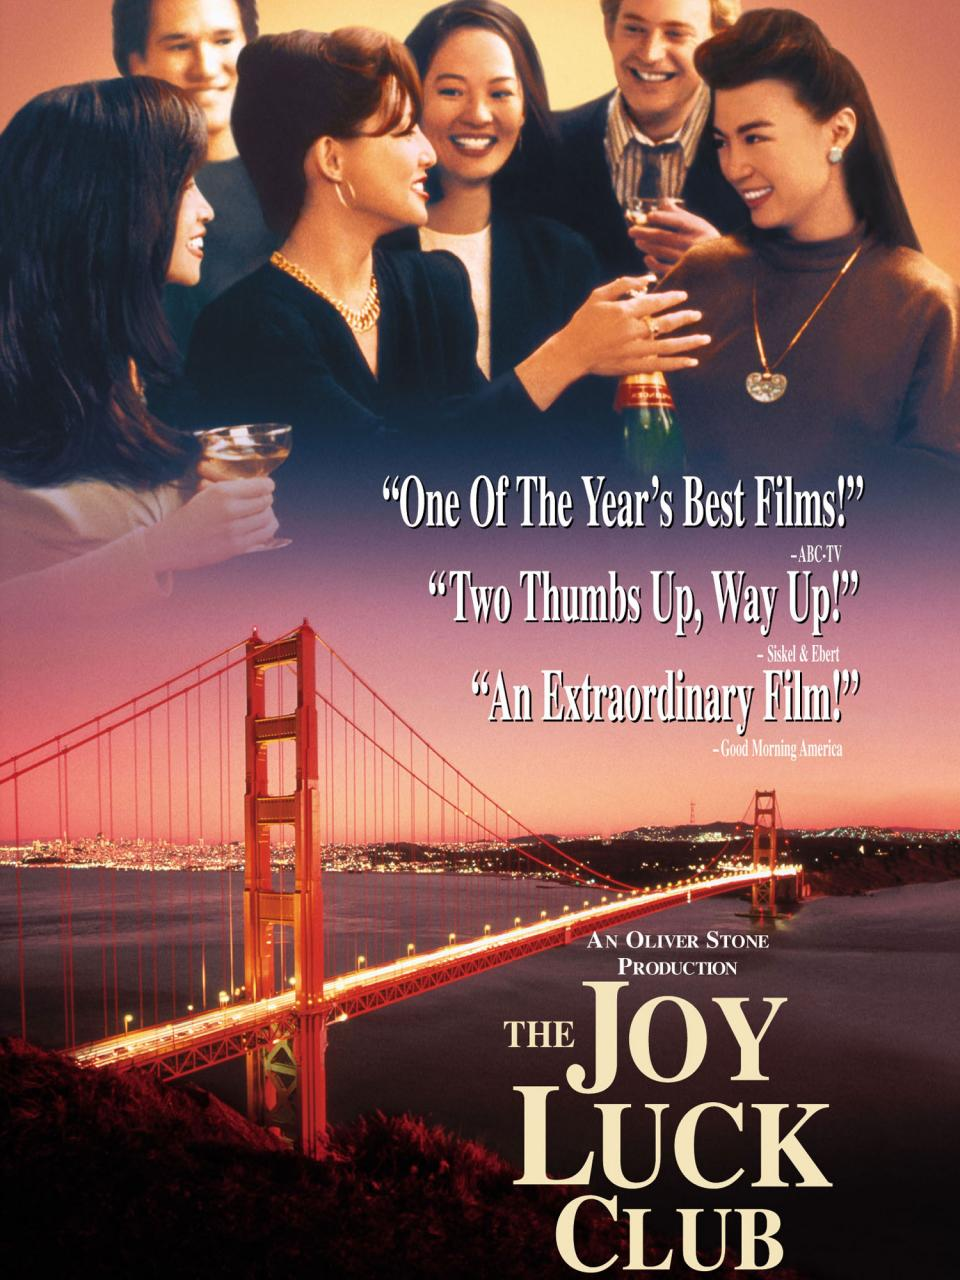 Joy Luck Club film poster